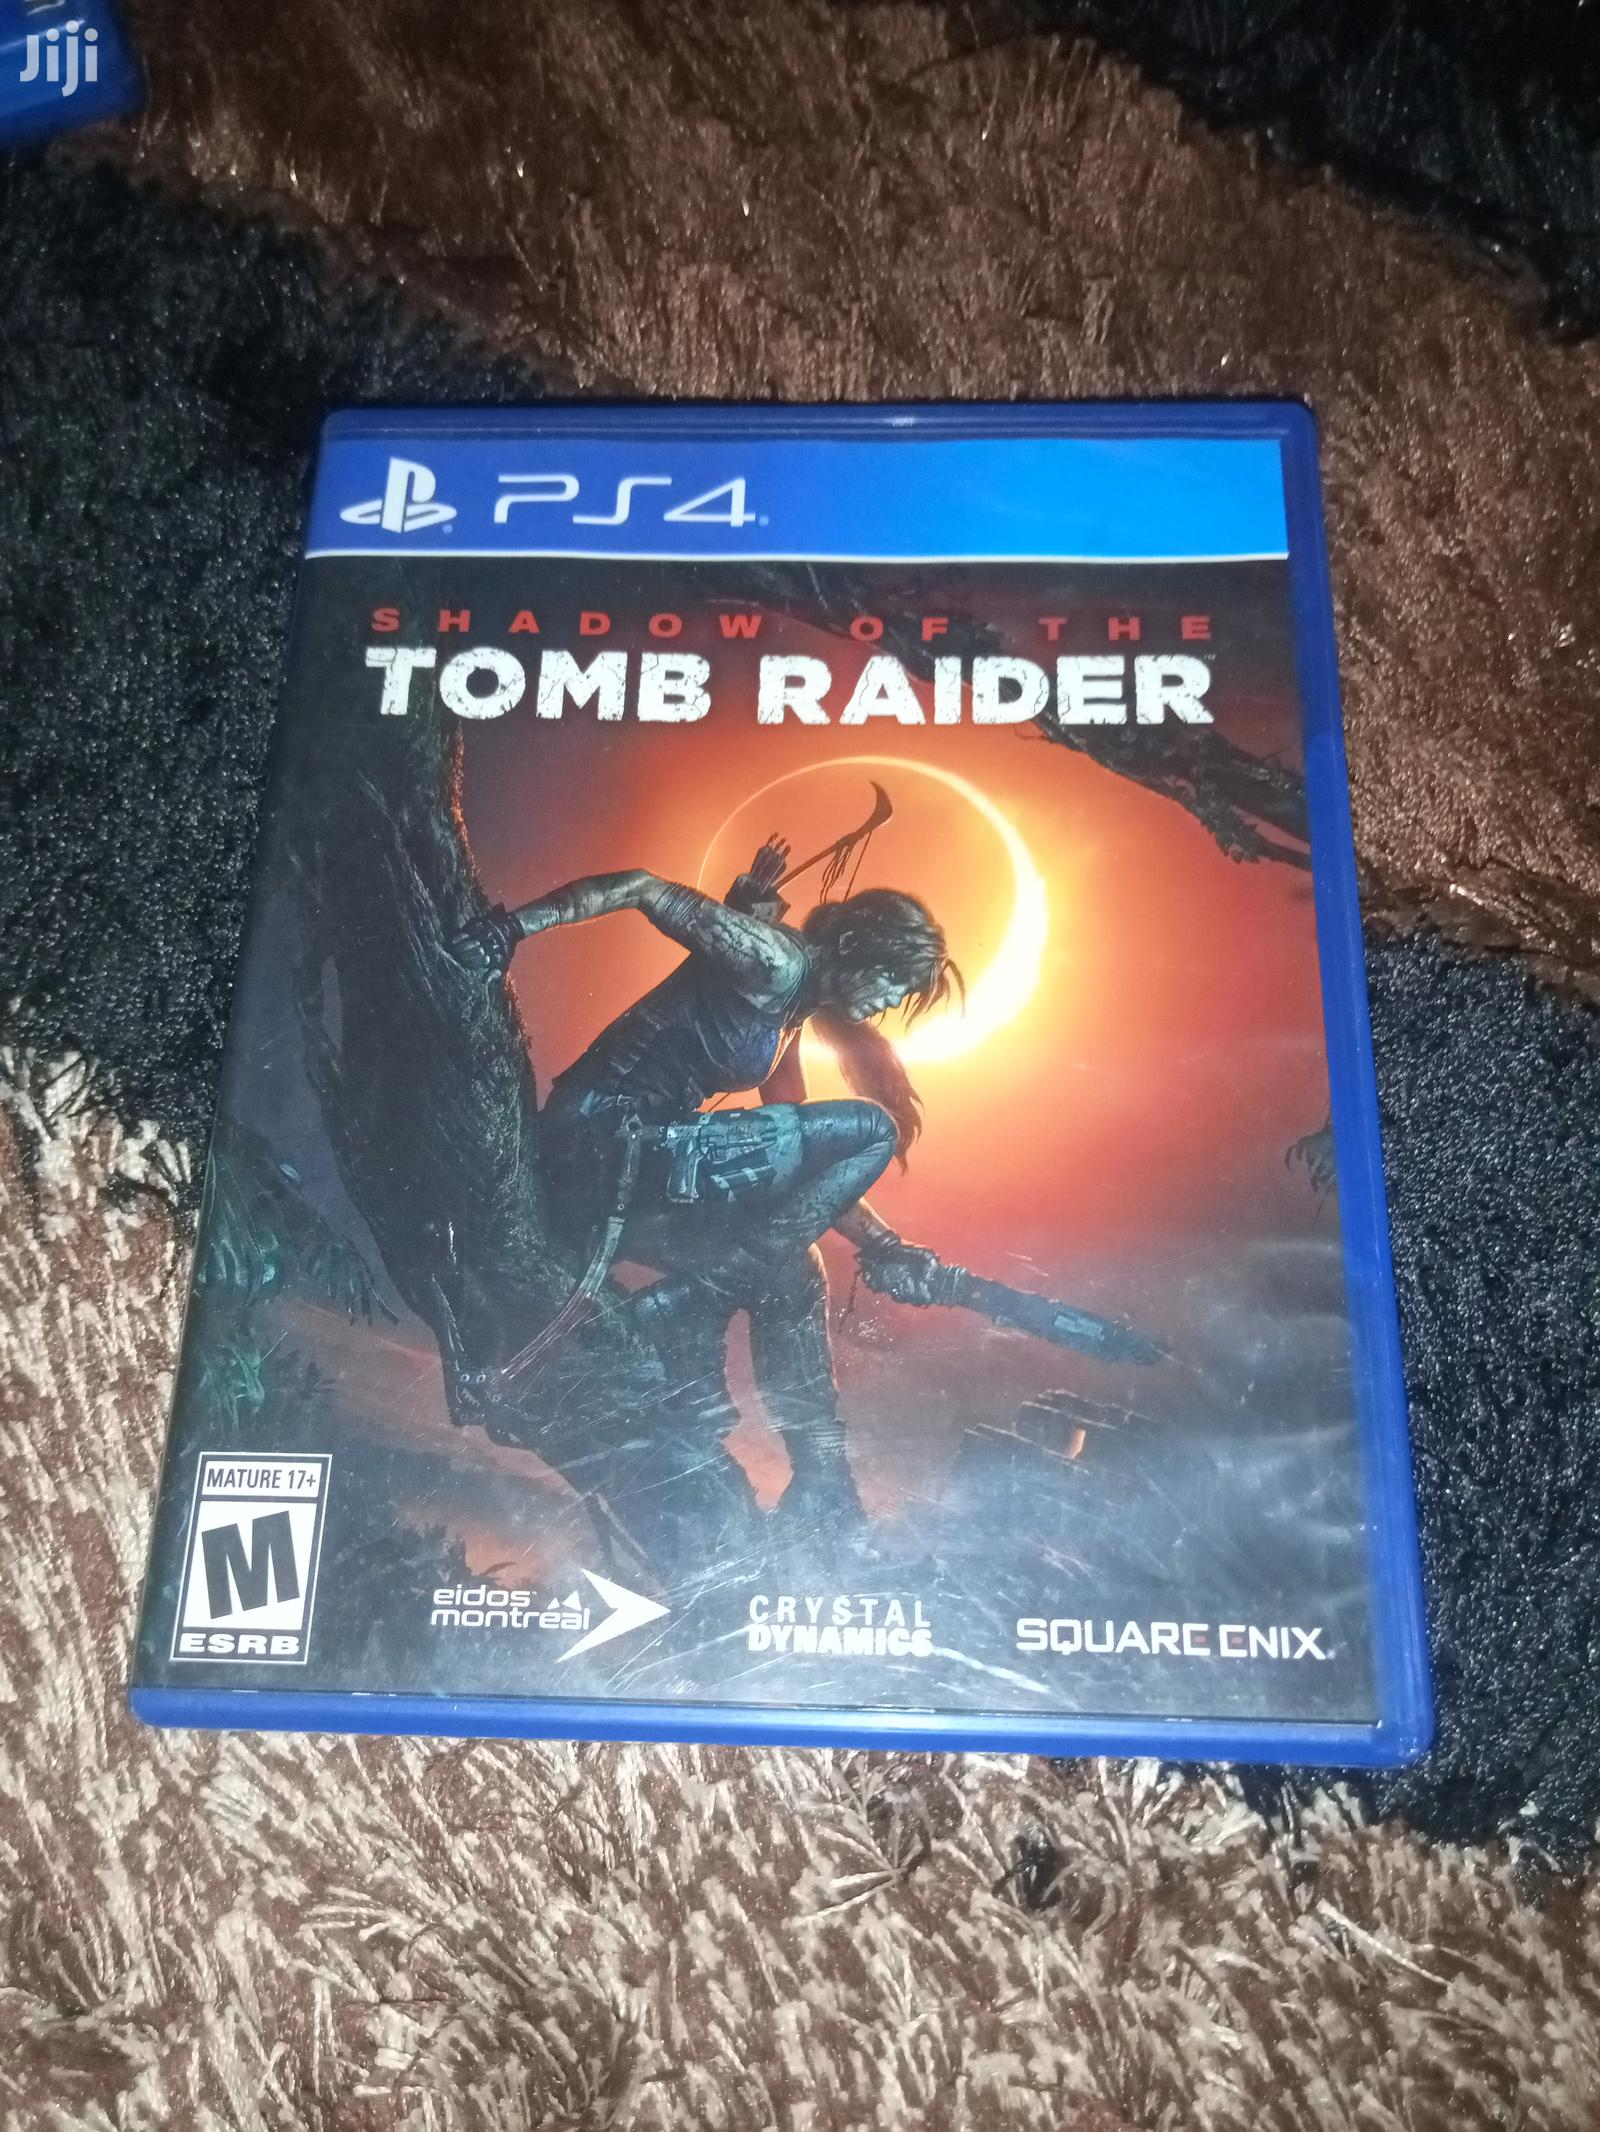 Archive: Shadow of the Tomb Raider